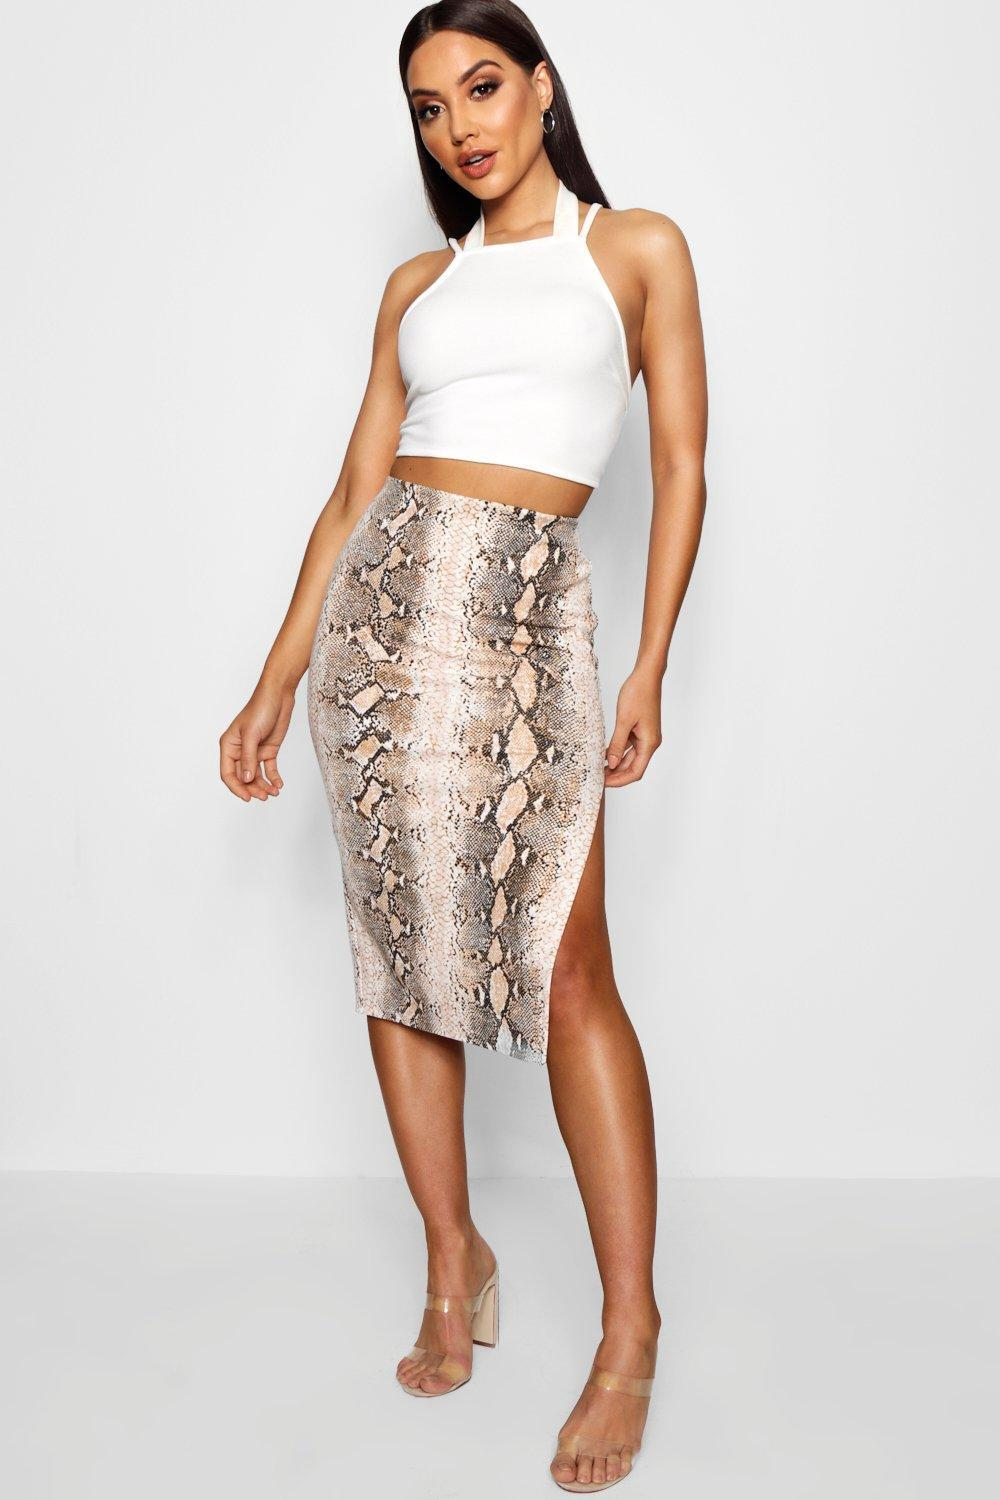 Boohoo Snake Print Double Split Midi Skater Skirt 2018 Newest For Sale Cheap Sale Low Cost Sale Really Free Shipping Great Deals Pictures Cheap Online 0iJWzt